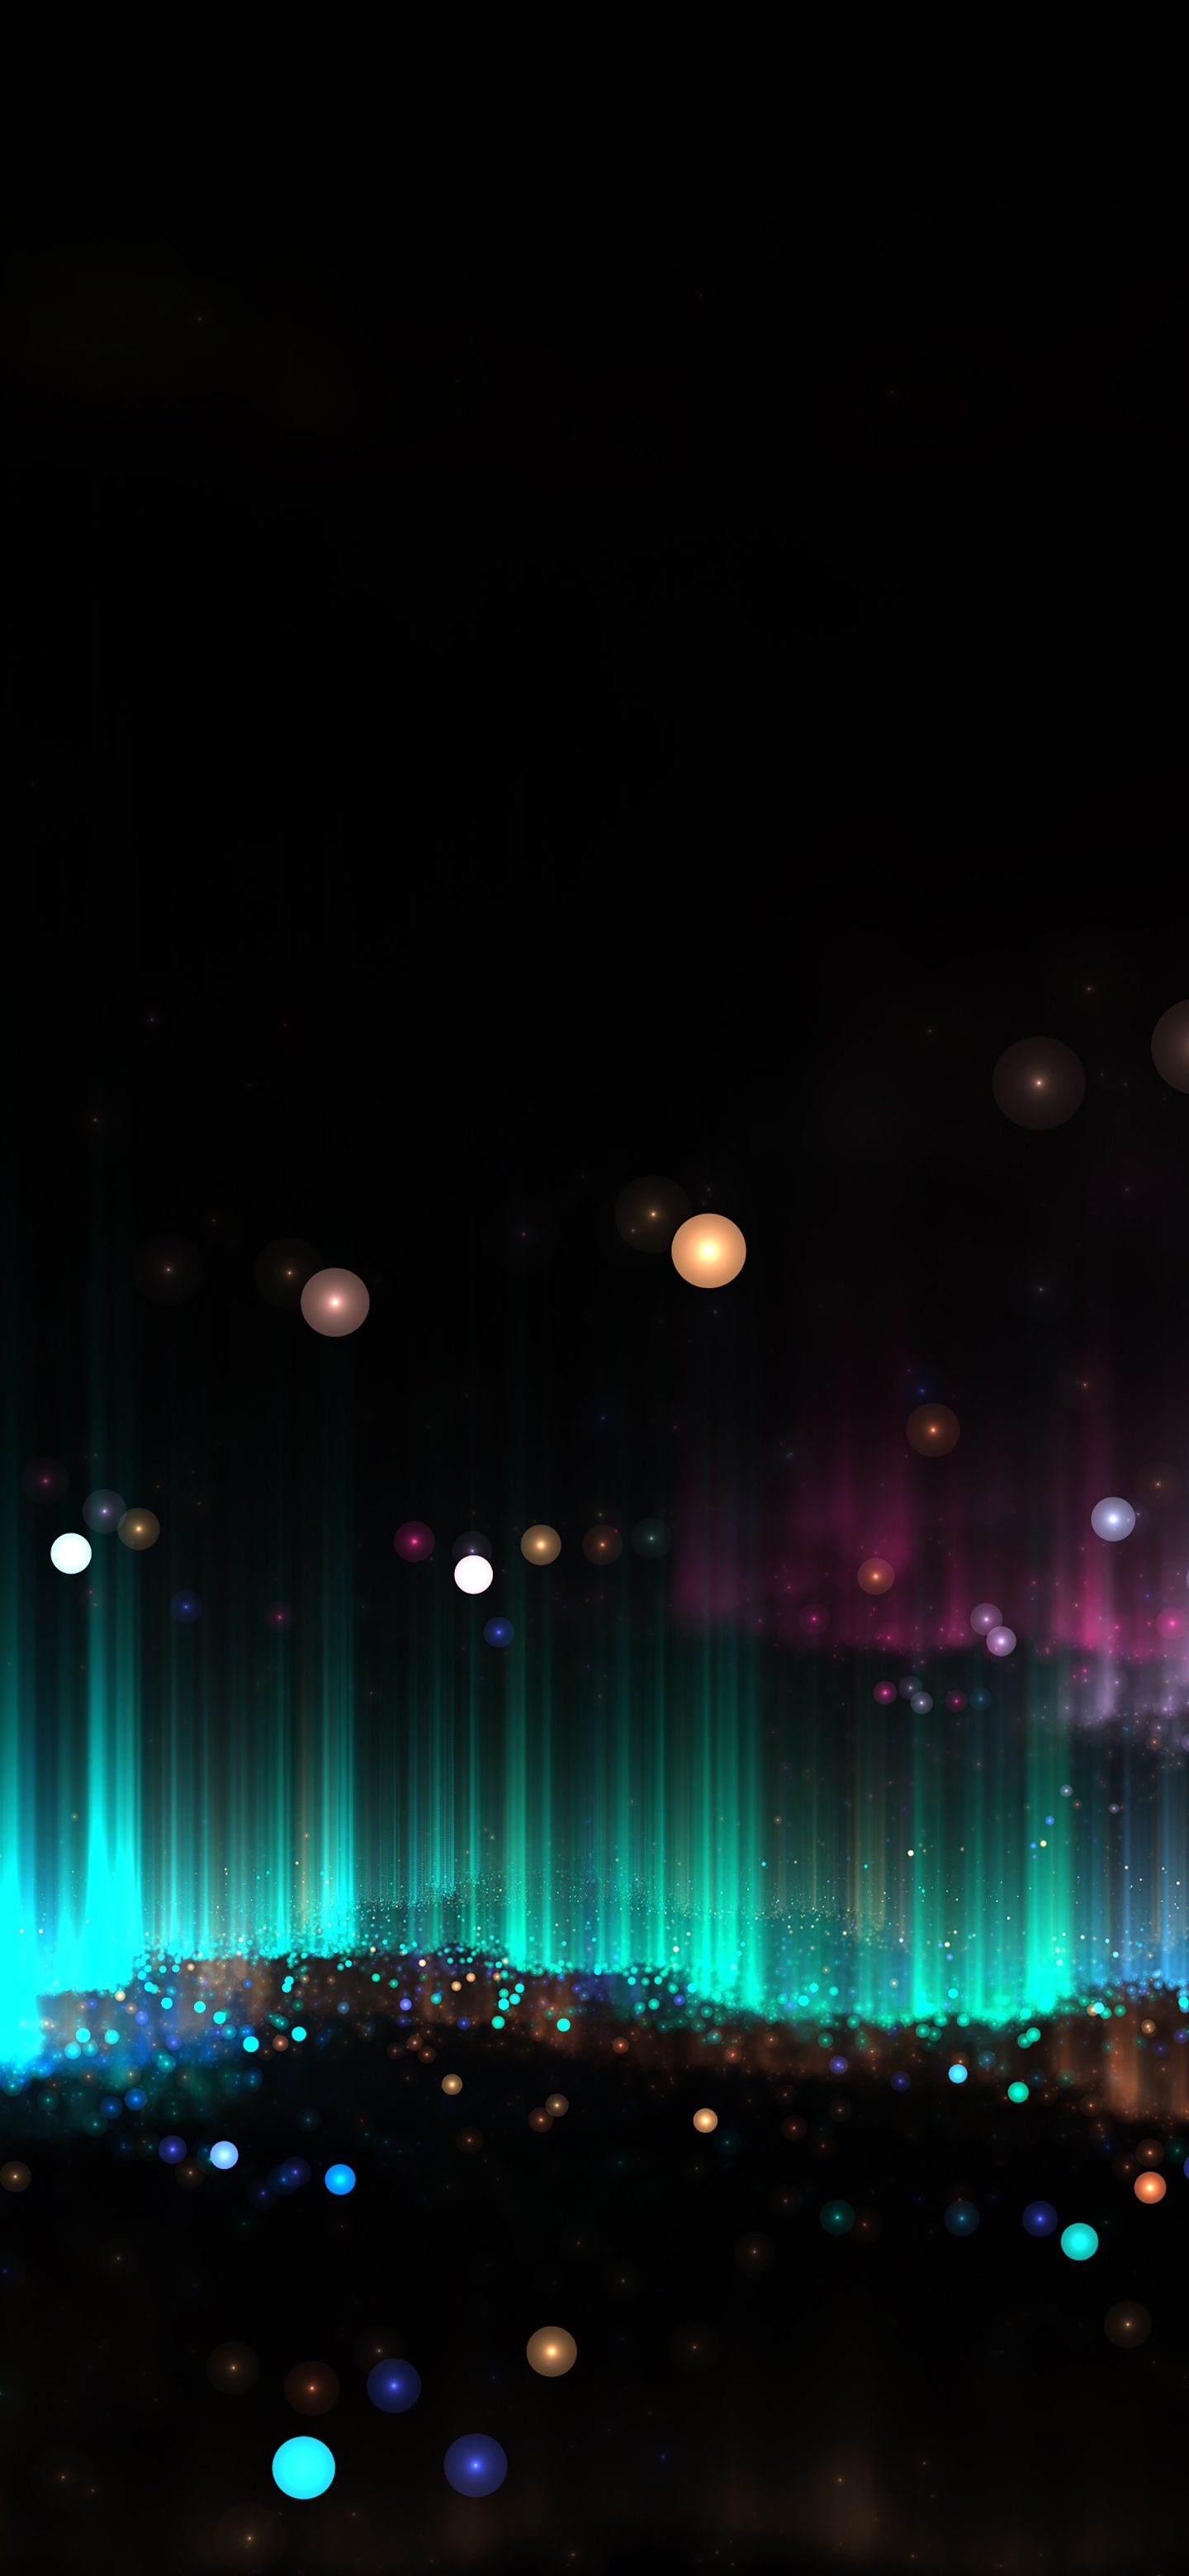 OLED space wallpaper iphone idownloadblog abstract